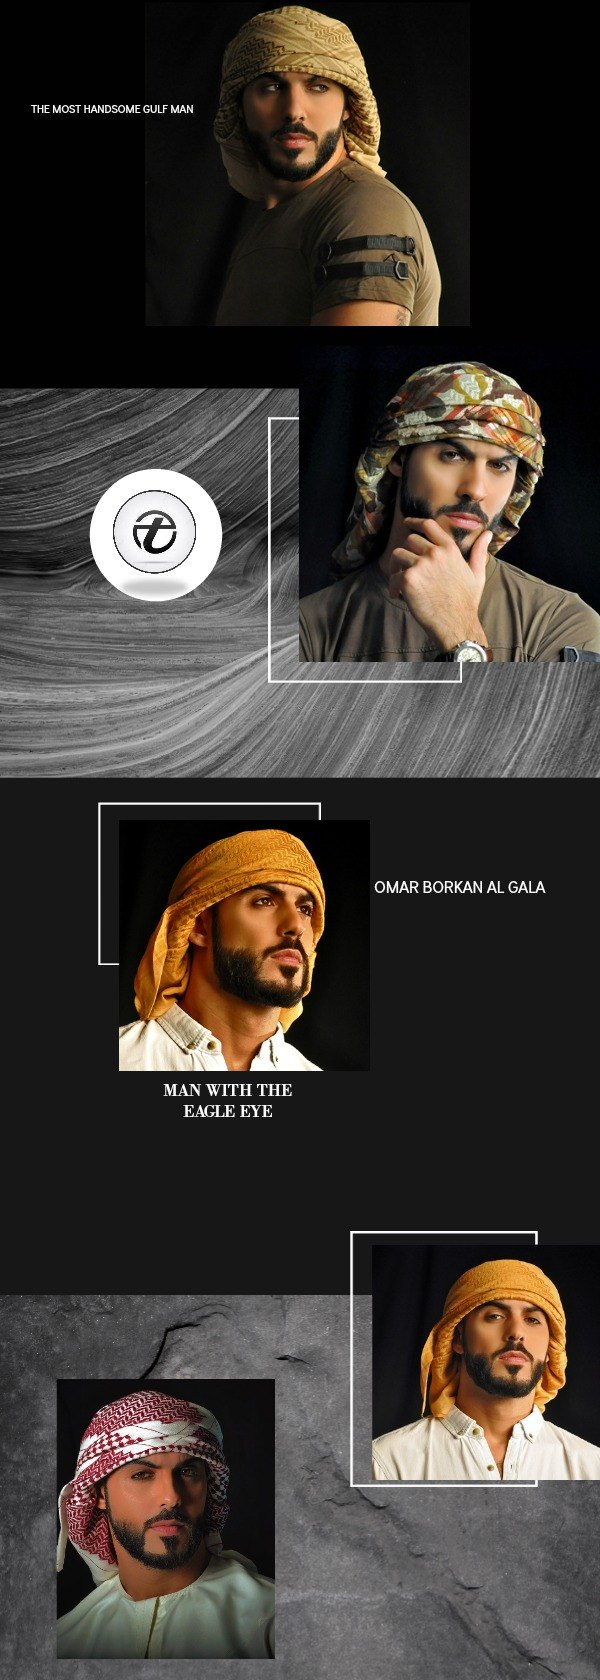 latest and hottest pictures of omar borkan